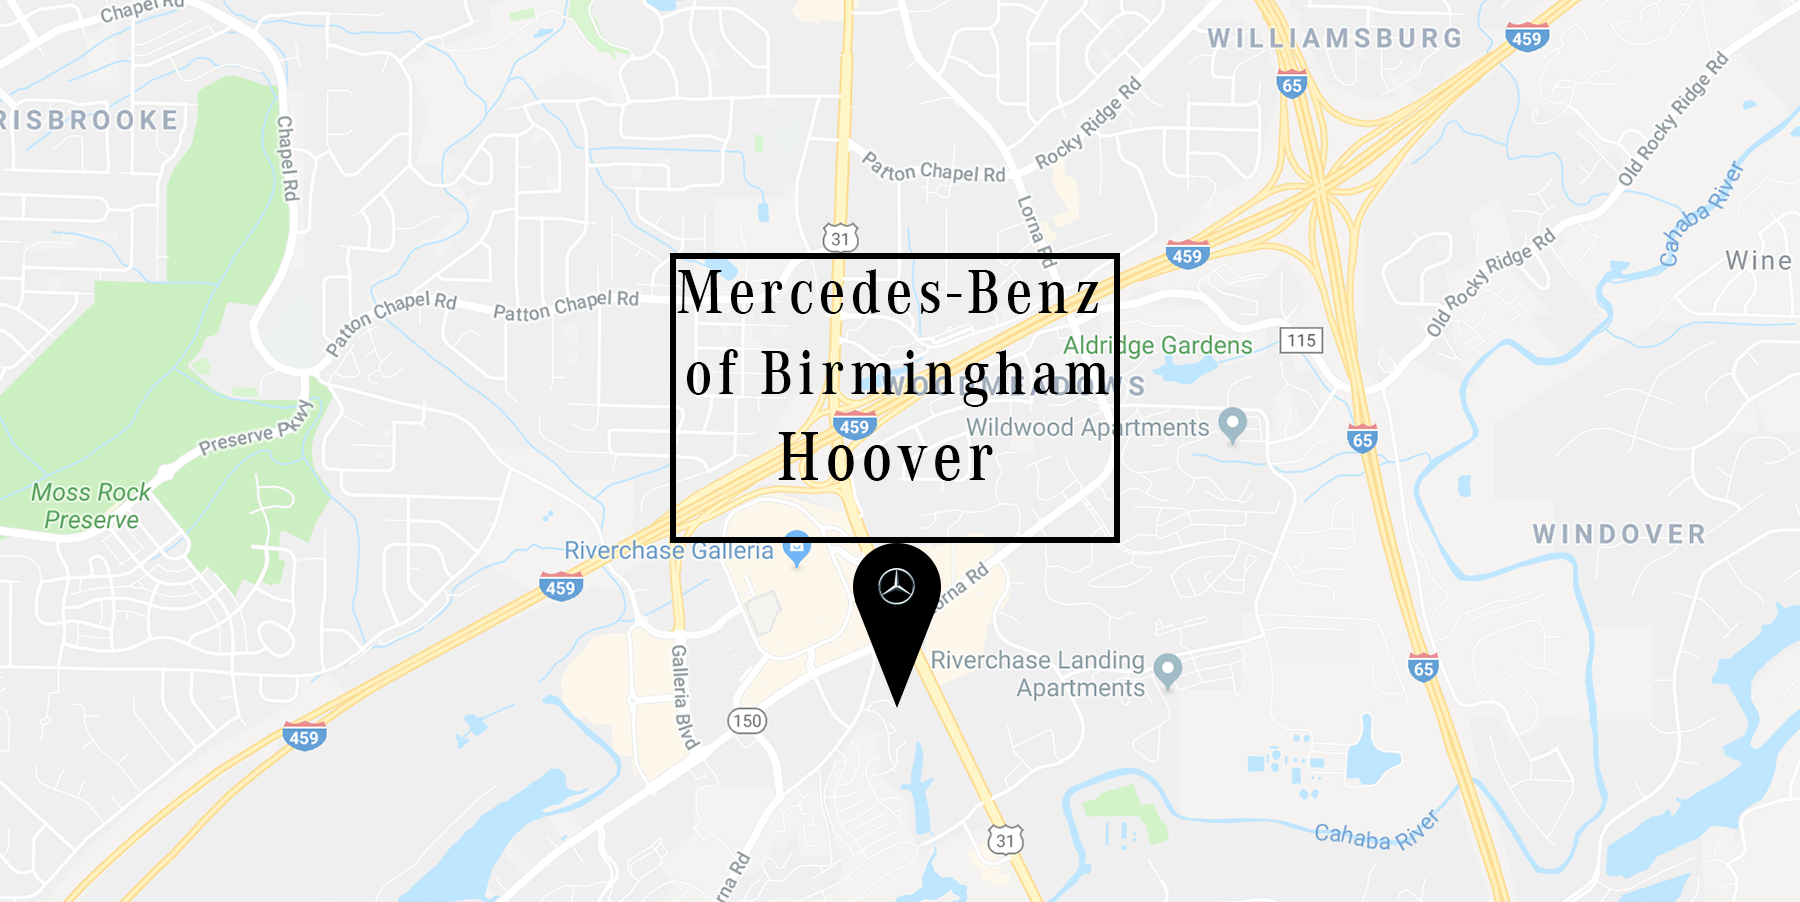 Mercedes-Benz of Birmingham Hoover Campus